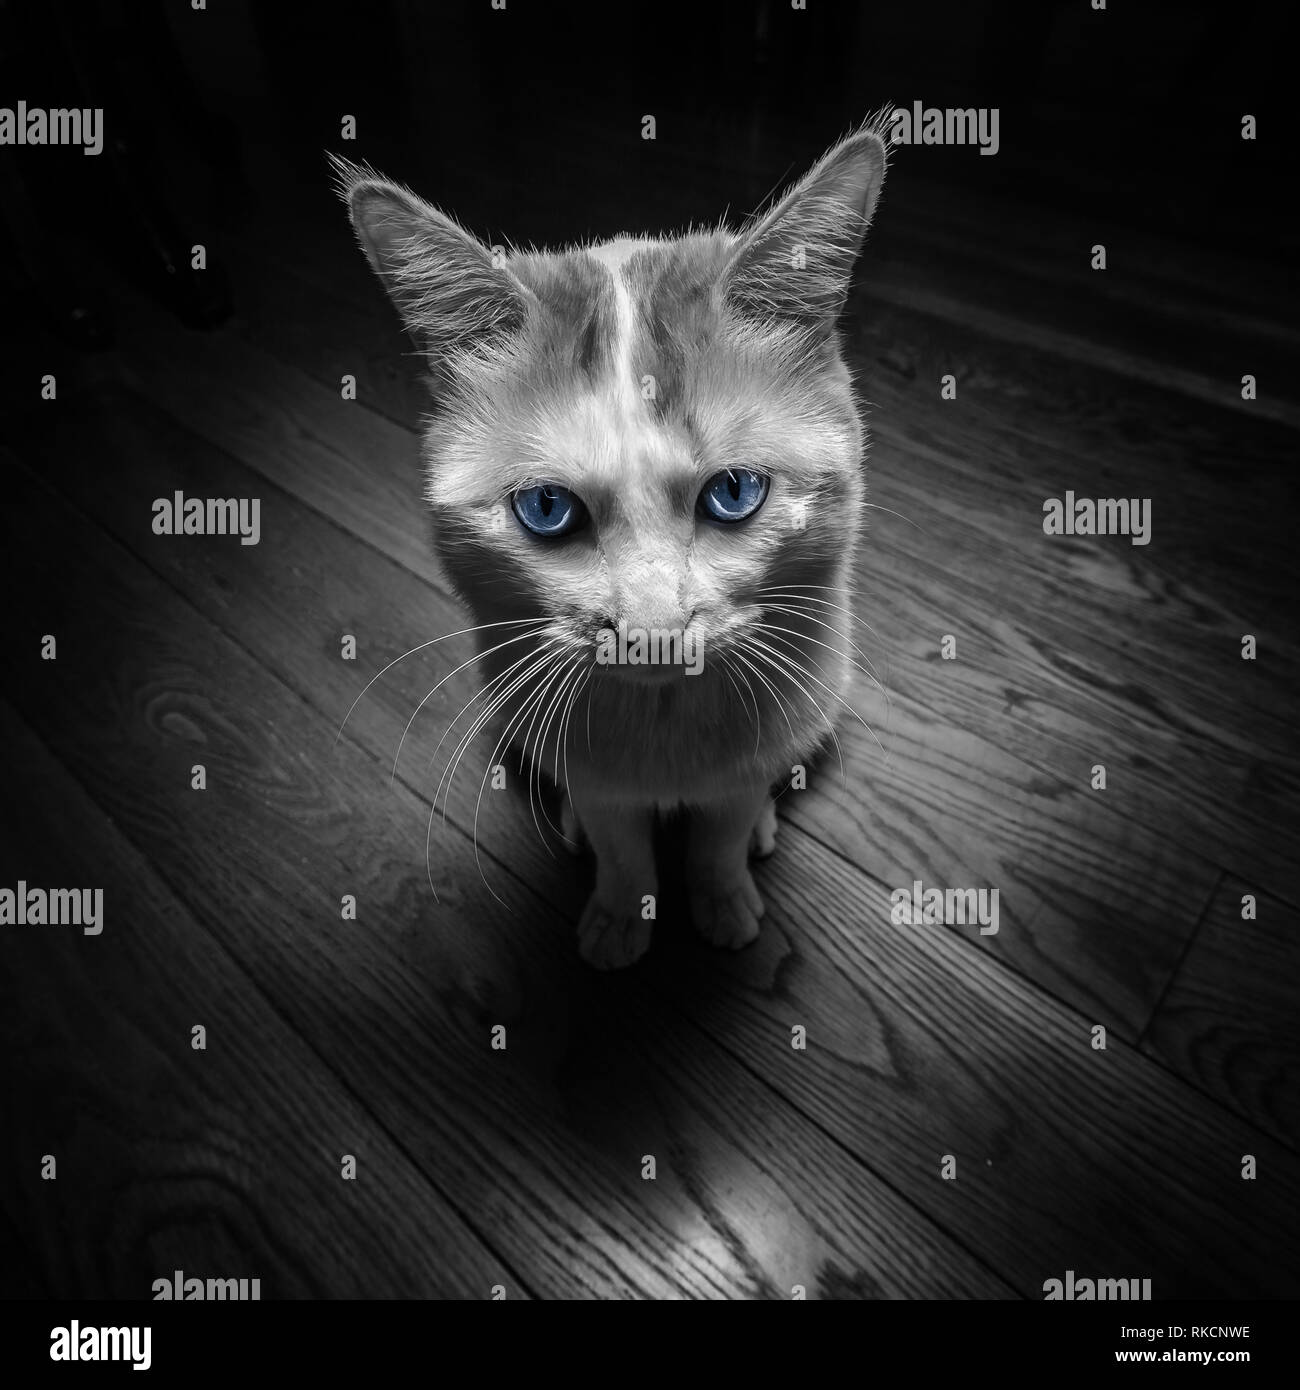 Black and White Tabby Cat with Bright Blue Eyes, Abstract Animal Housepet - Stock Image